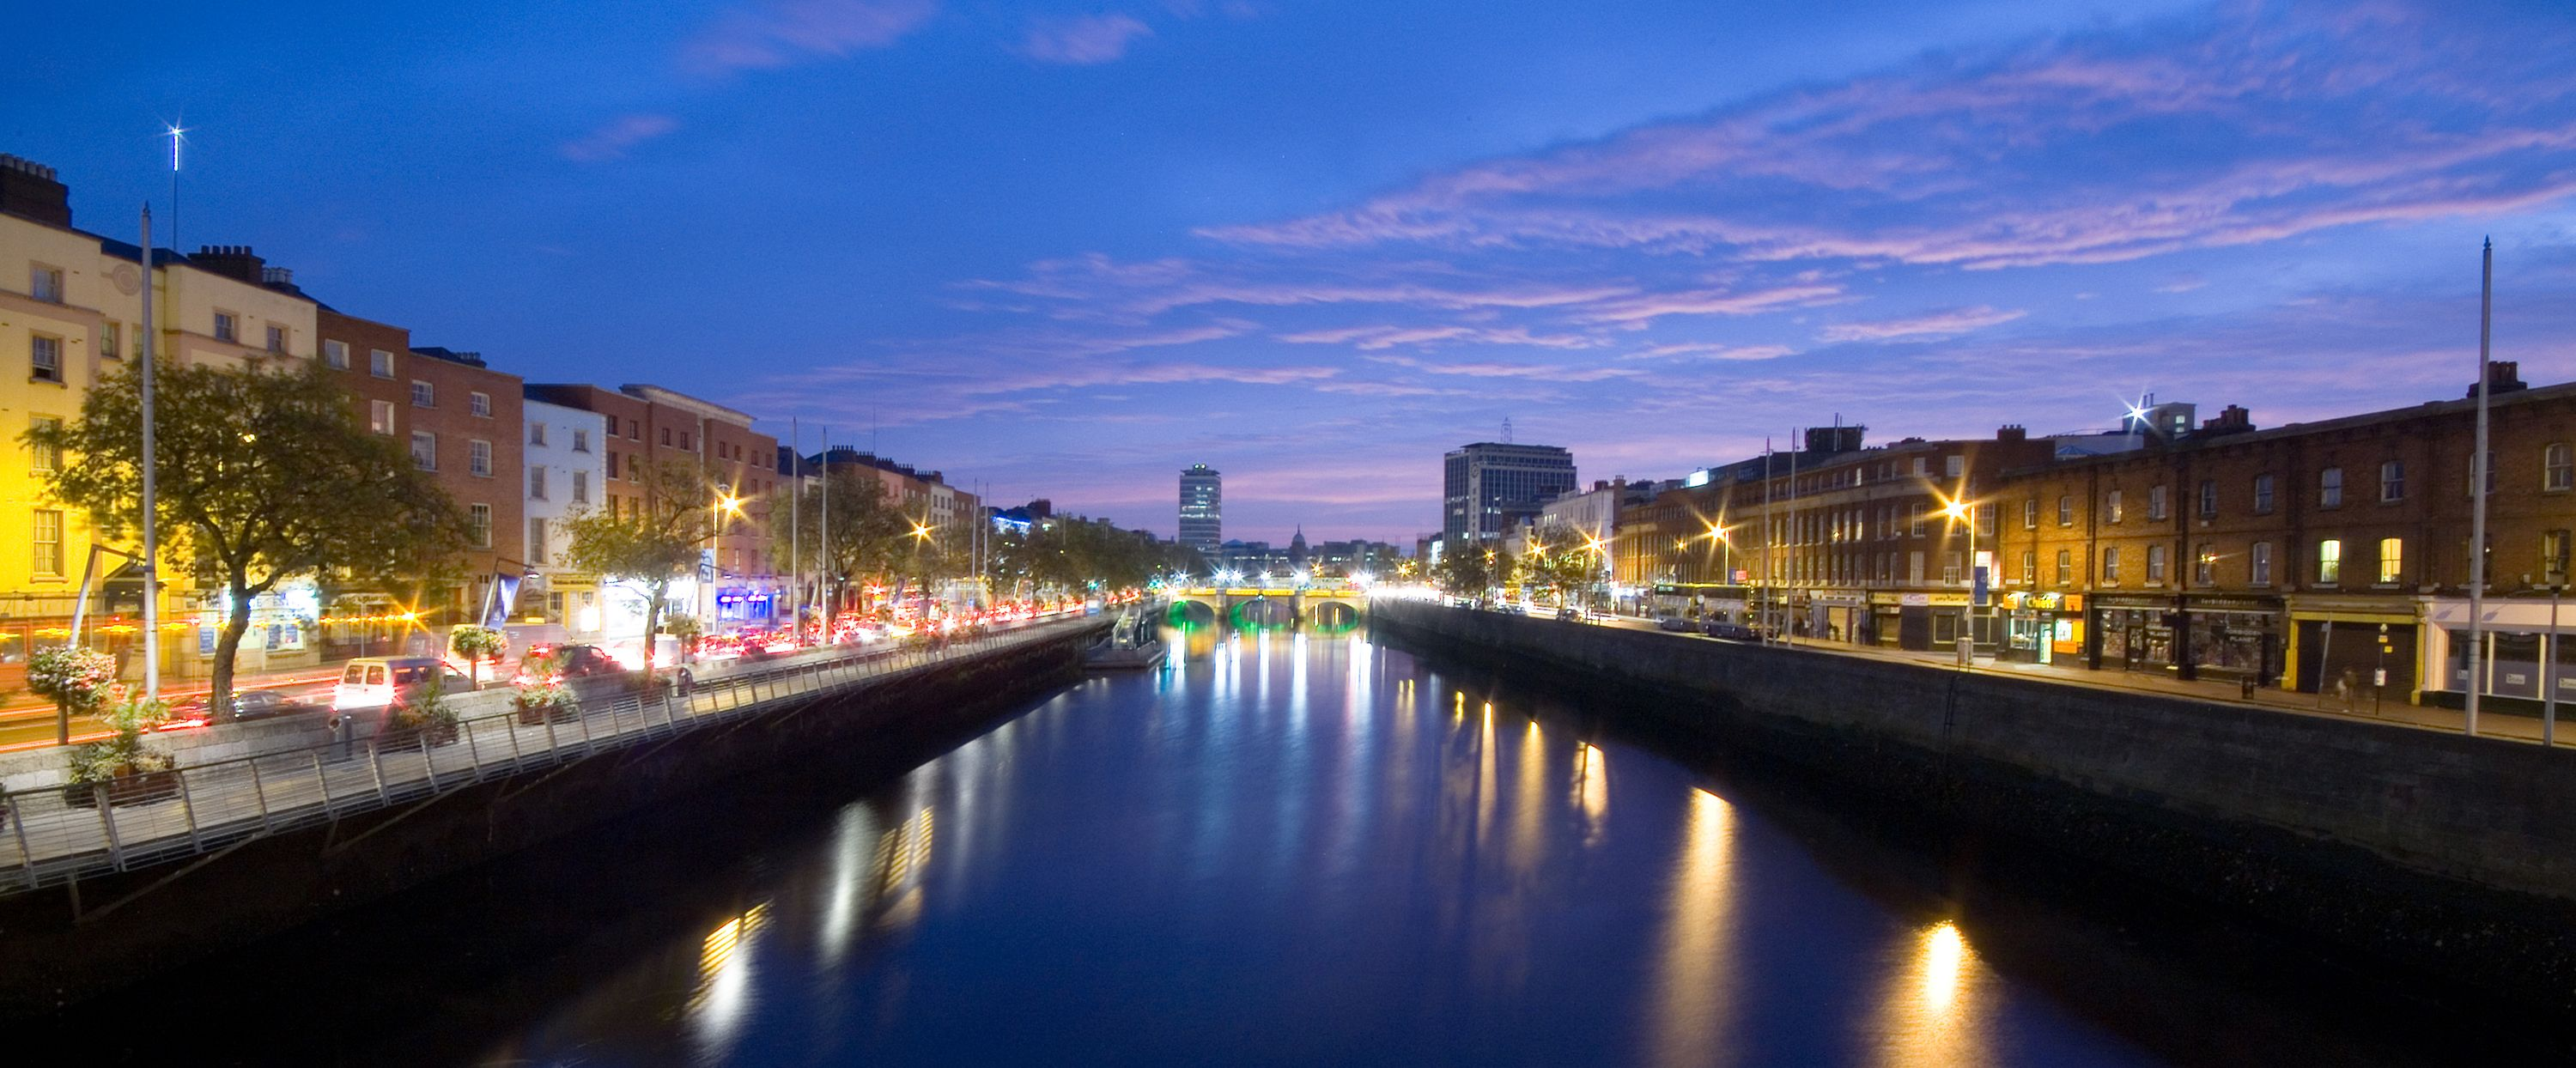 A stretch of the River Liffey looking at the O'Connell